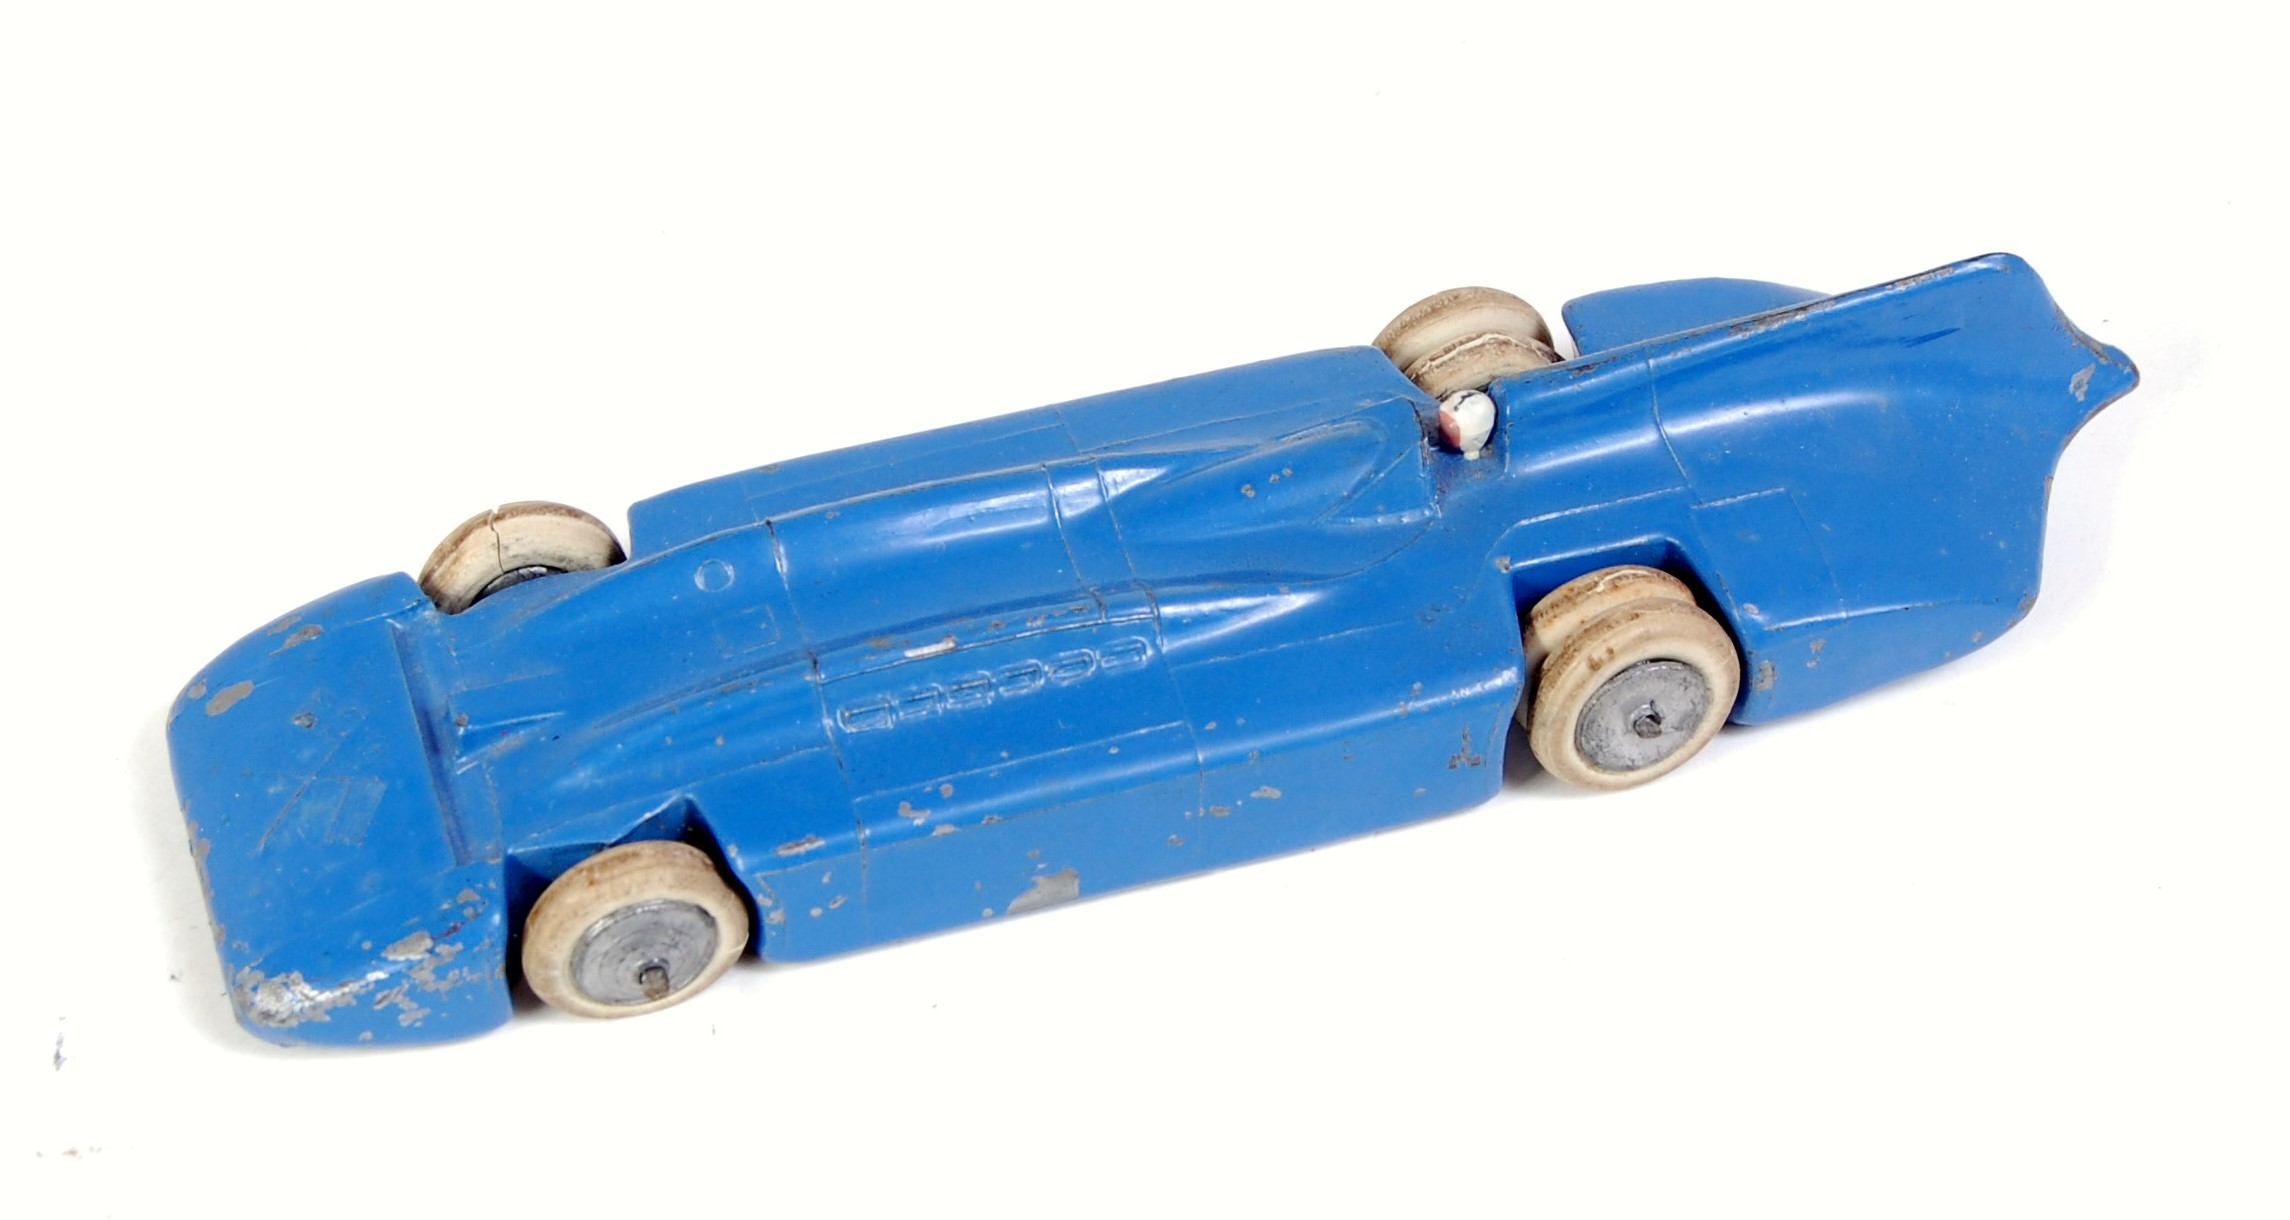 A Britains No. 1400 Blue Bird Speed Record Car comprising of two piece casting with blue body and